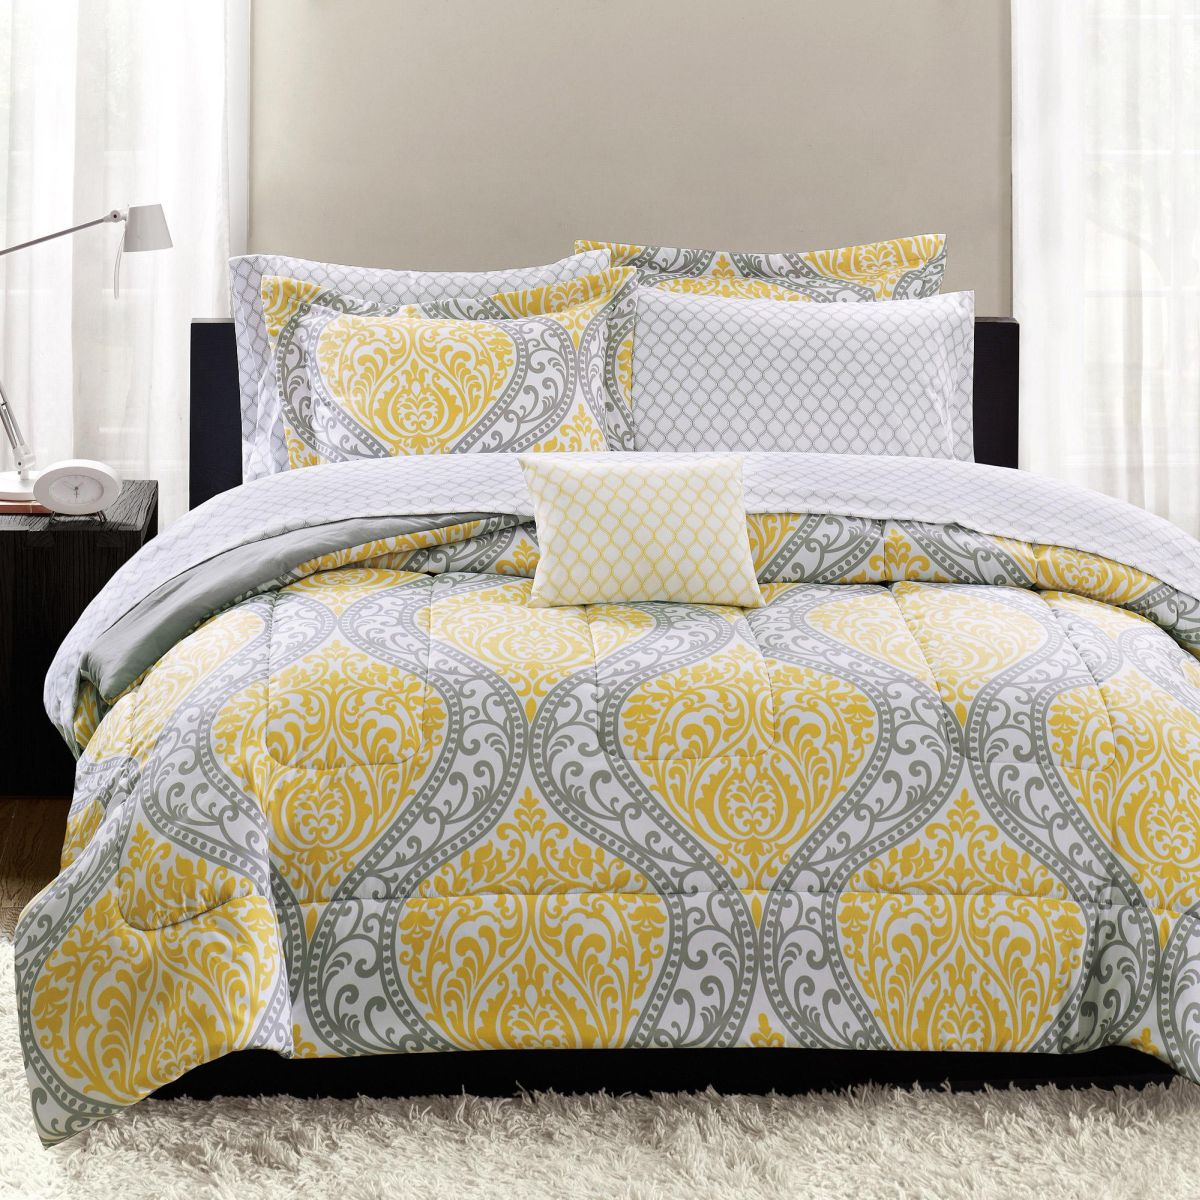 for set and black your bed bedding awesome sets home white toile gray pin